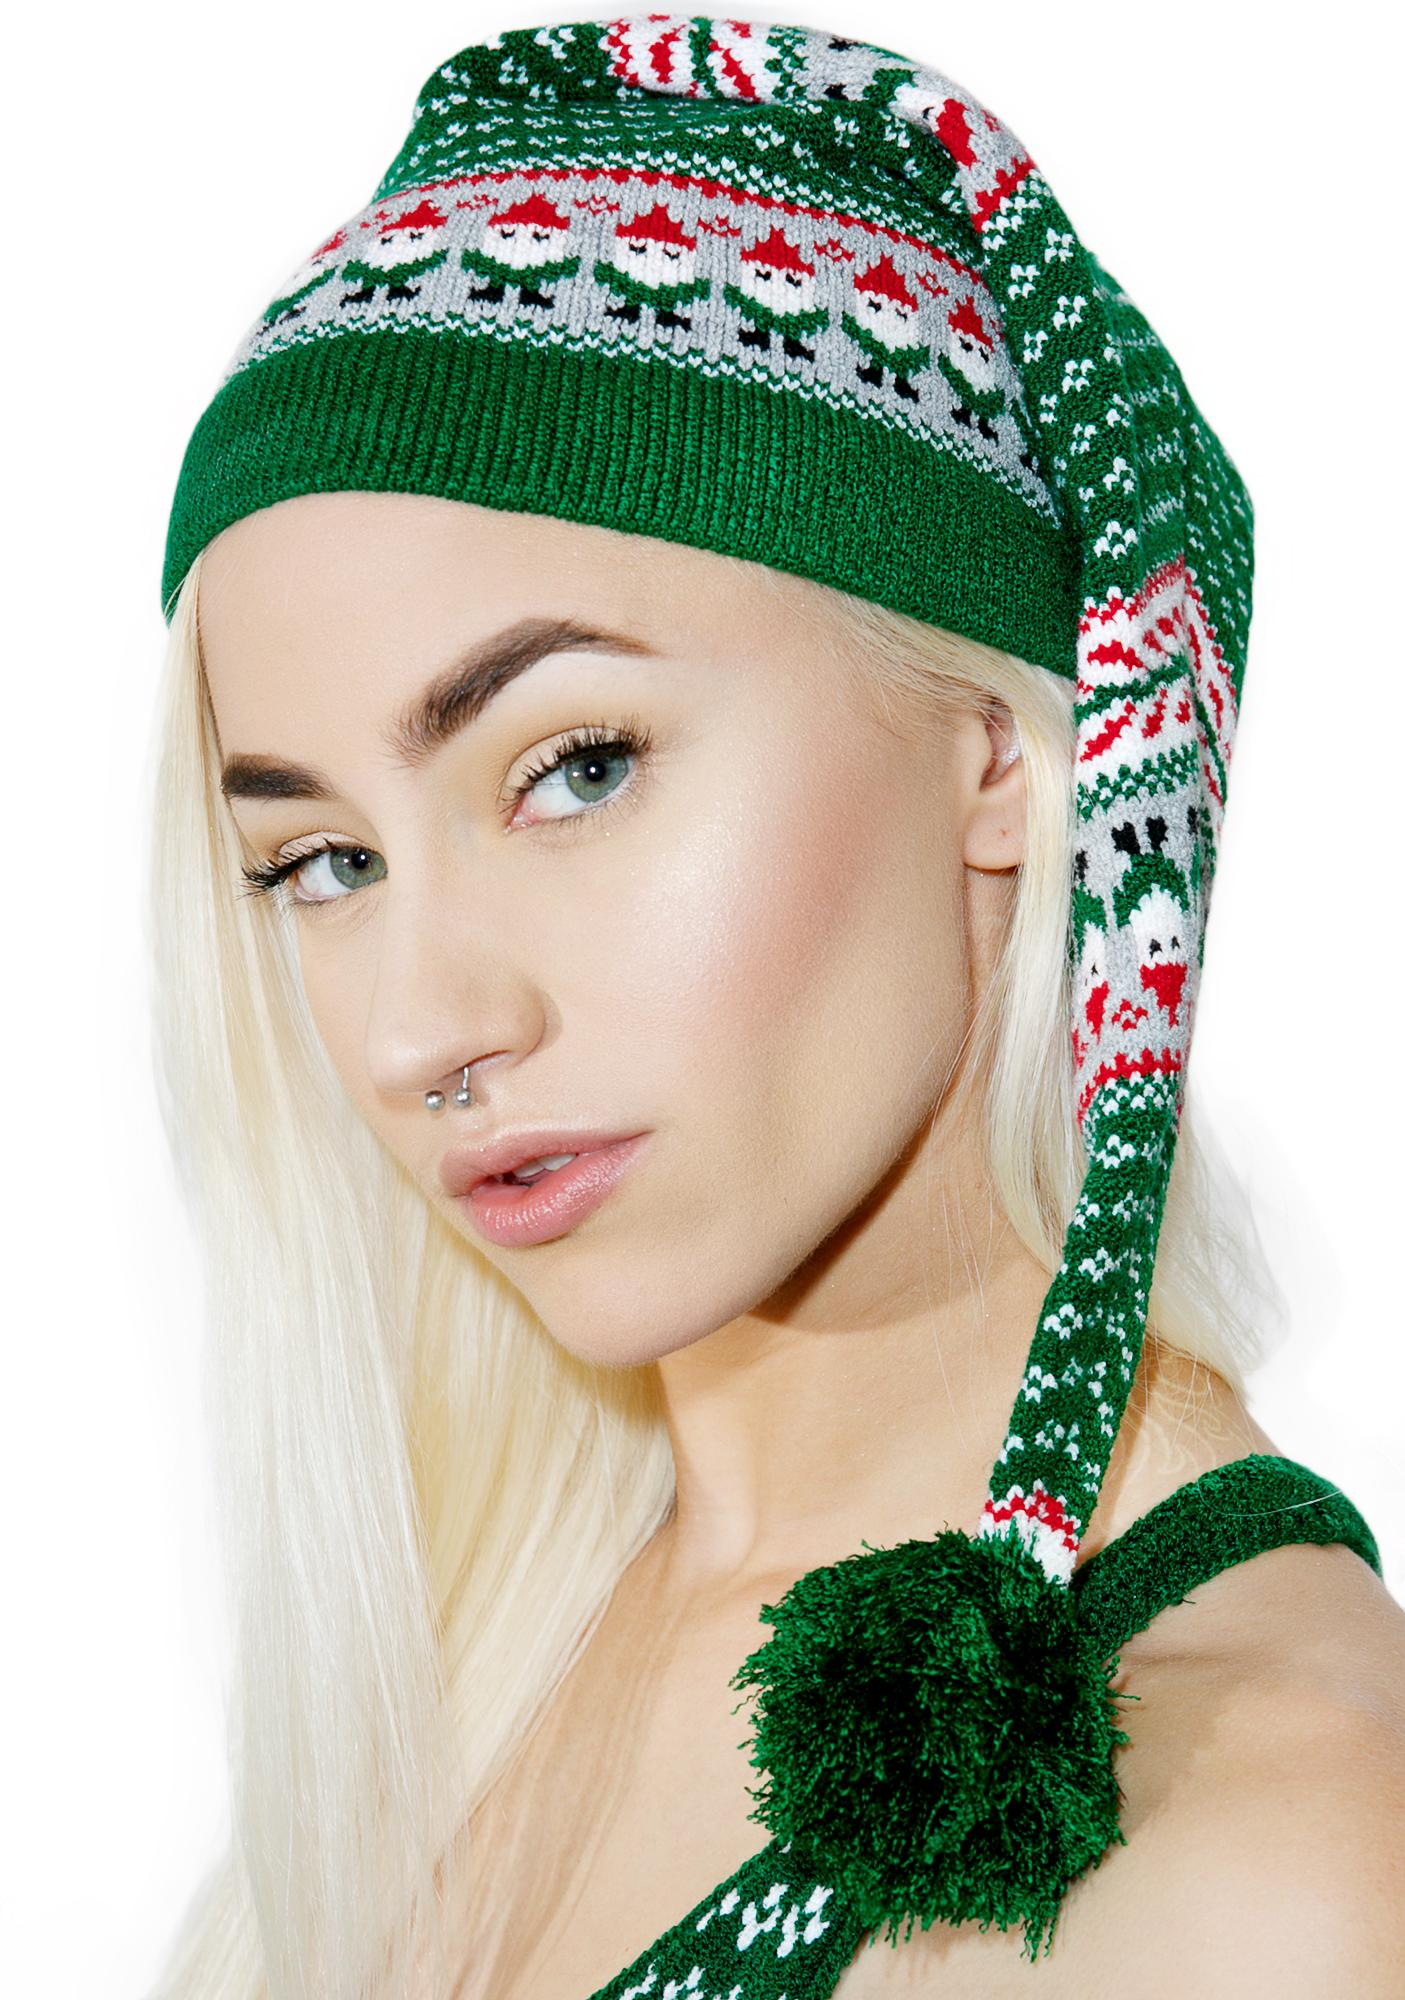 Knitty Kitty Little Elf Knit Cap